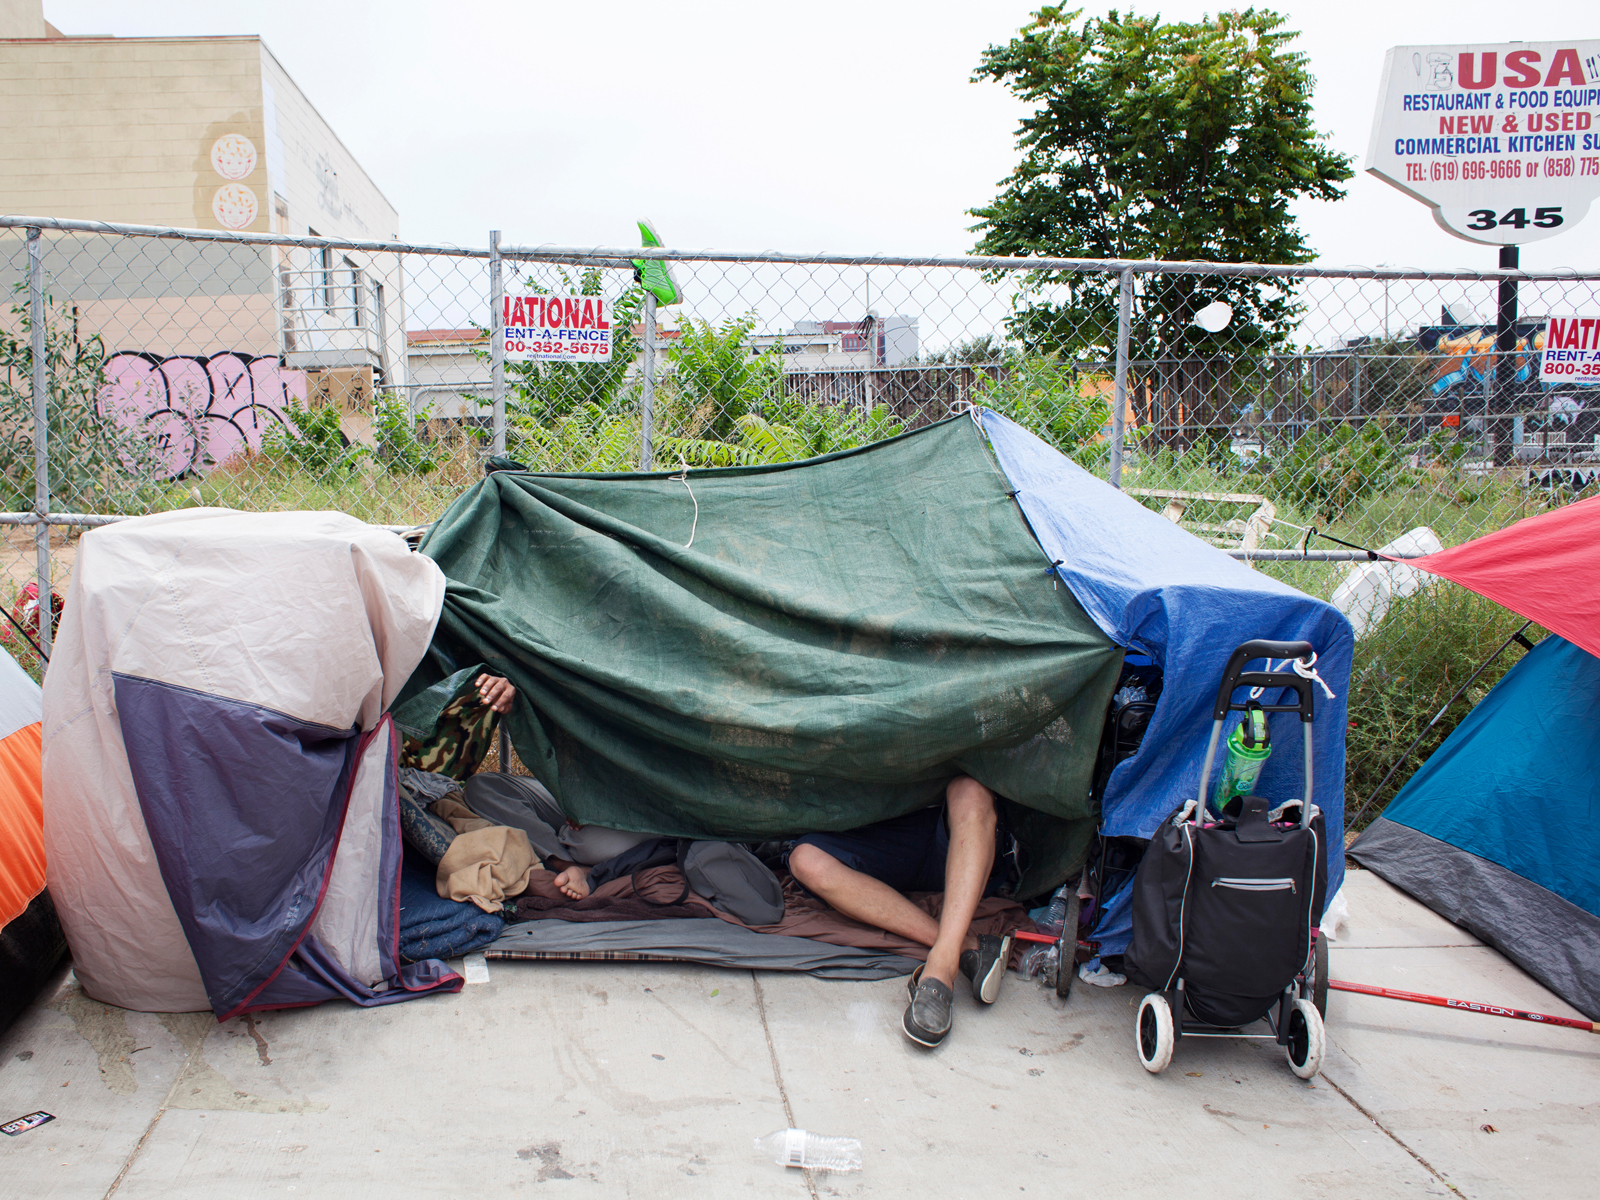 San Diego has the fourth biggest homeless population in the US. Streets filled with tents and other makeshift shelters are rather common, especially East Village.